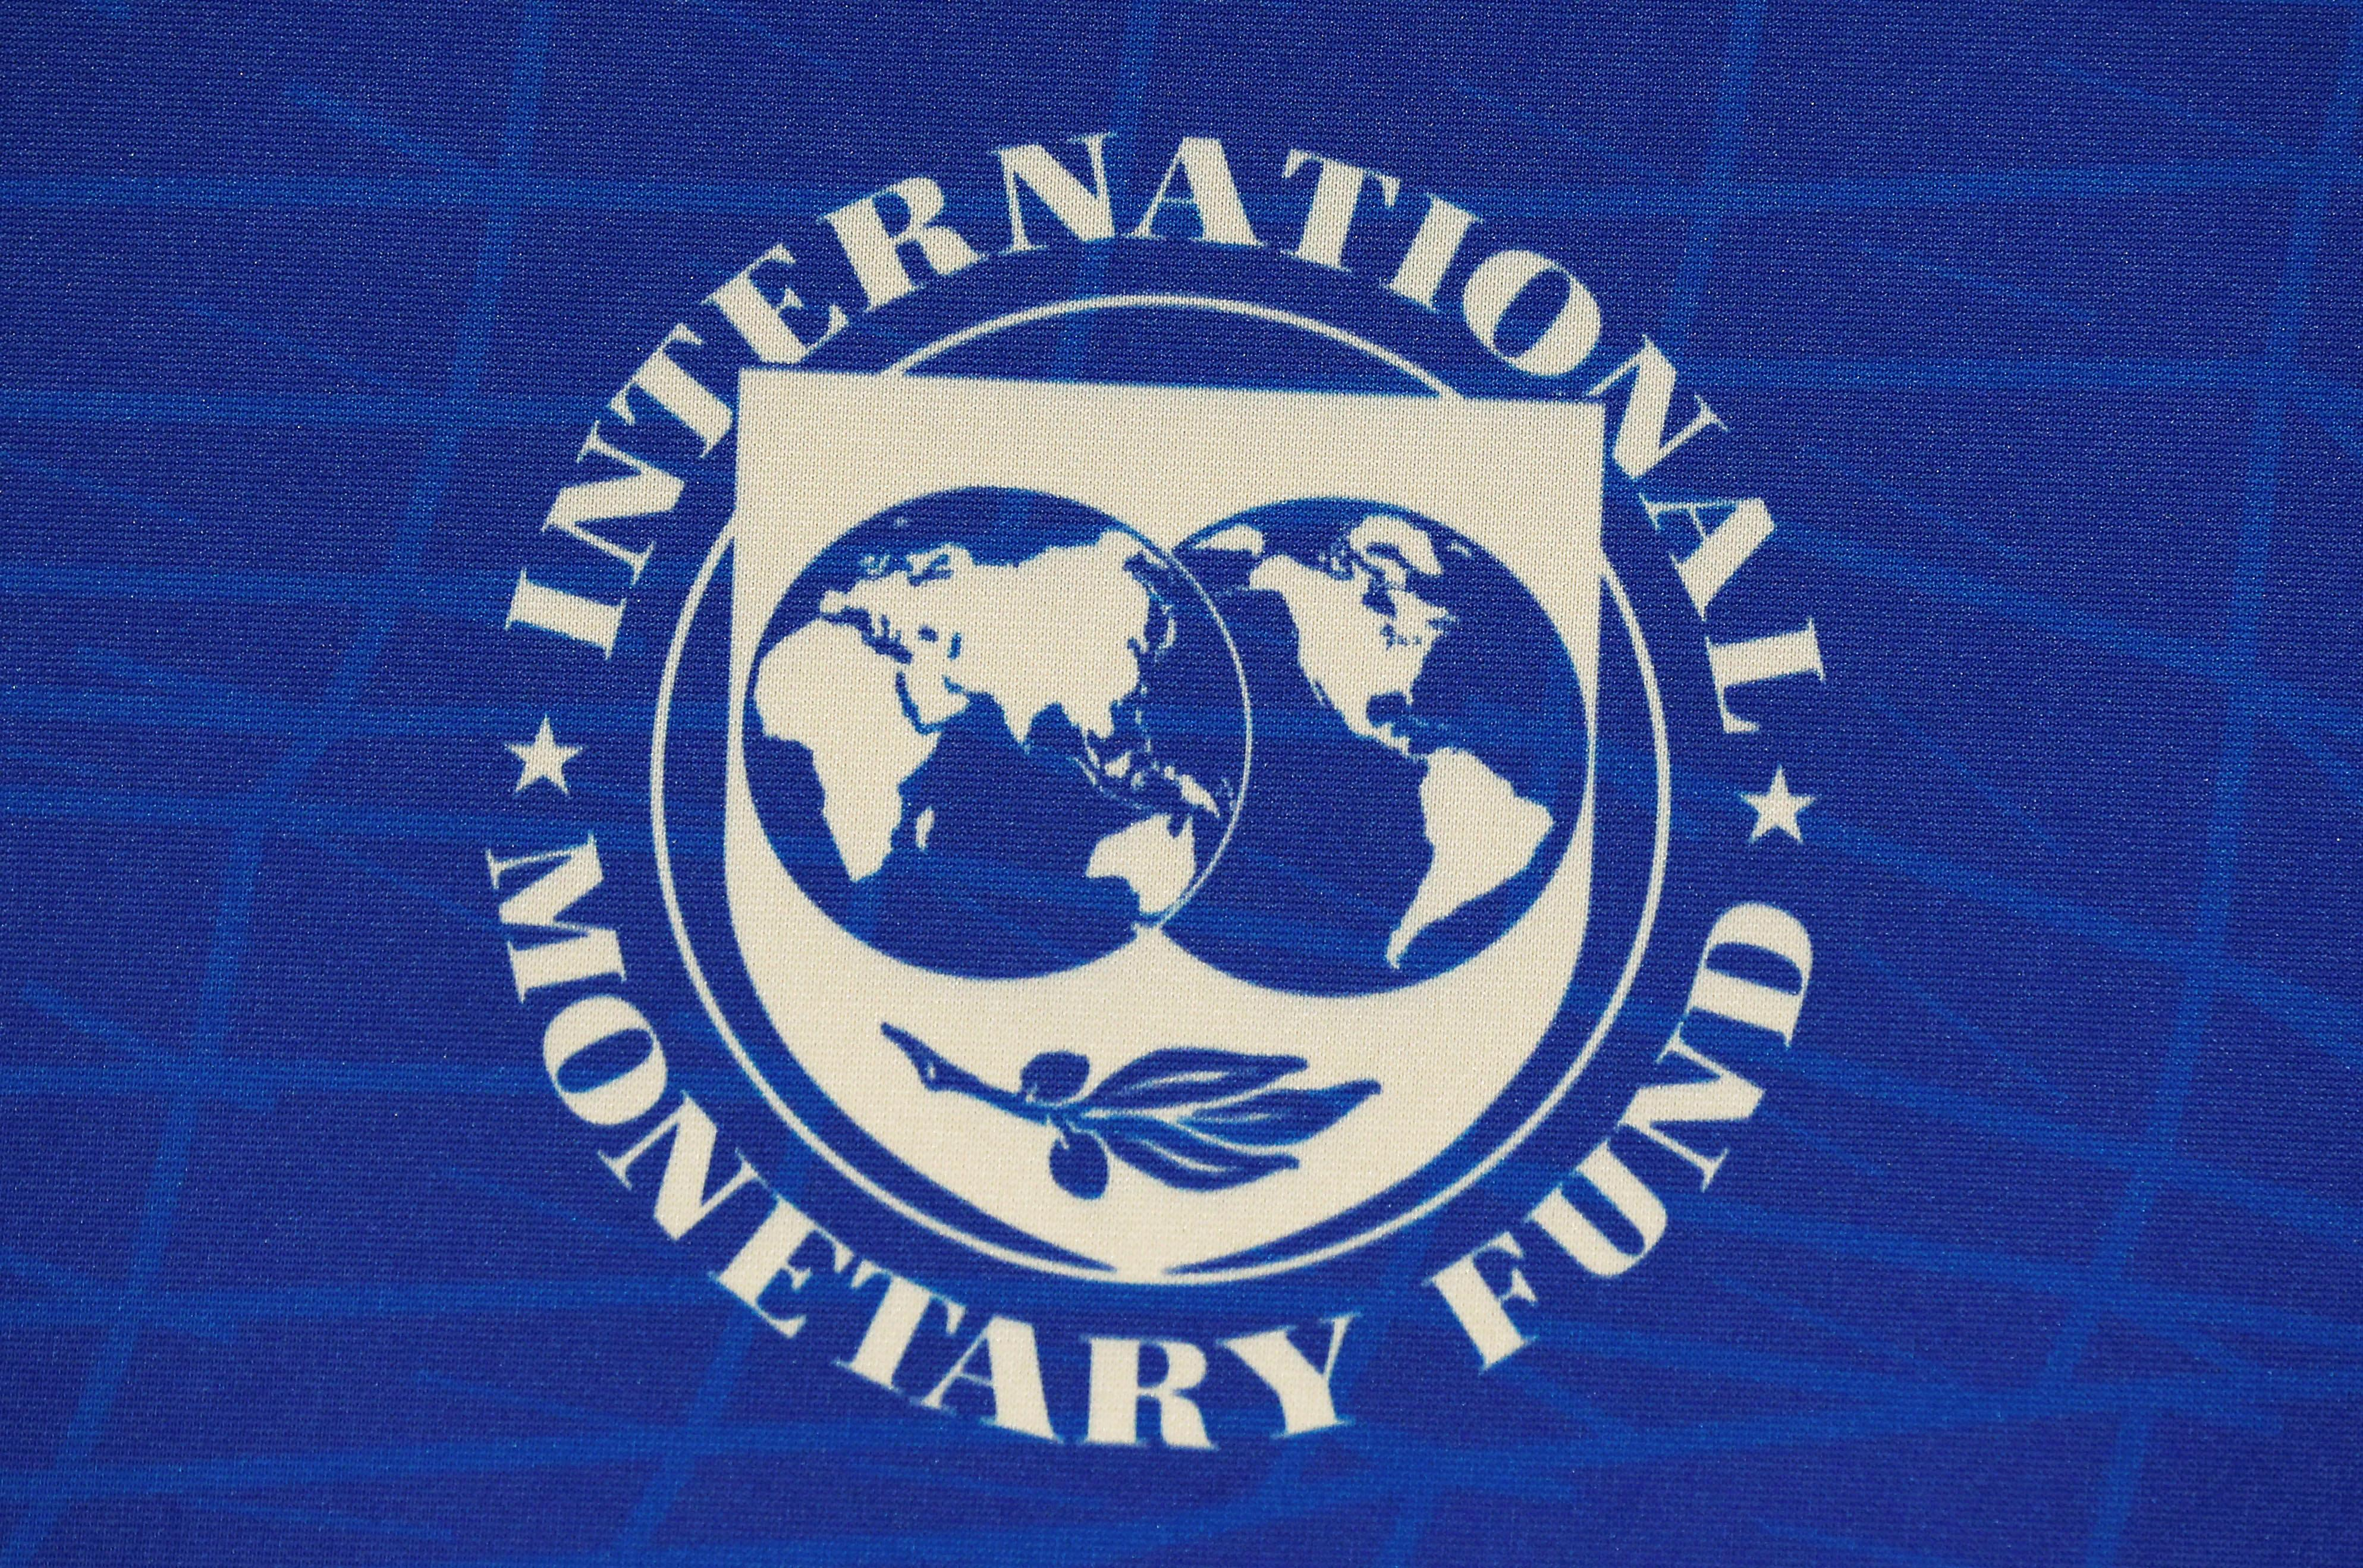 IMF to hold weekend meetings in Argentina with advisers for Macri, Fernandez